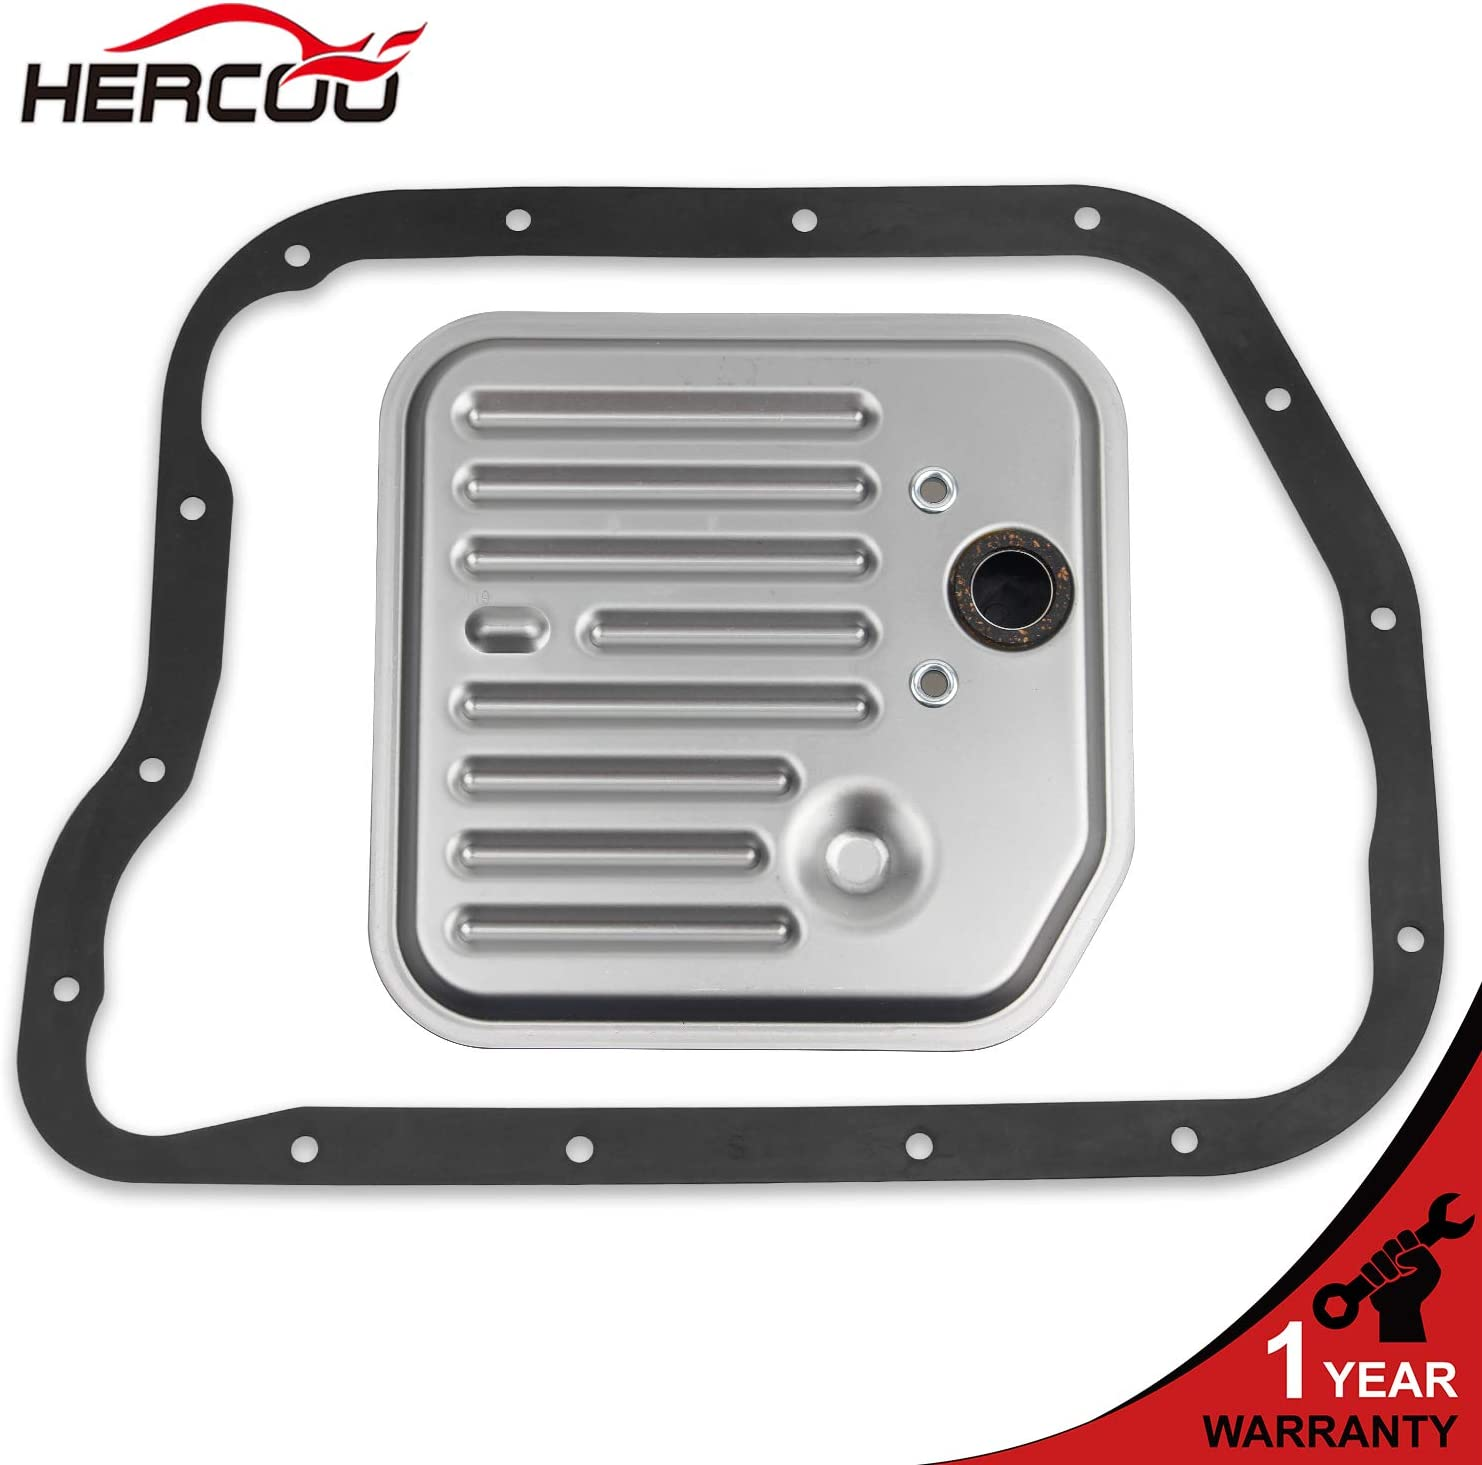 Transmissions & Parts HERCOO A518 A618 42RE 44RE 46RE 47RE ...